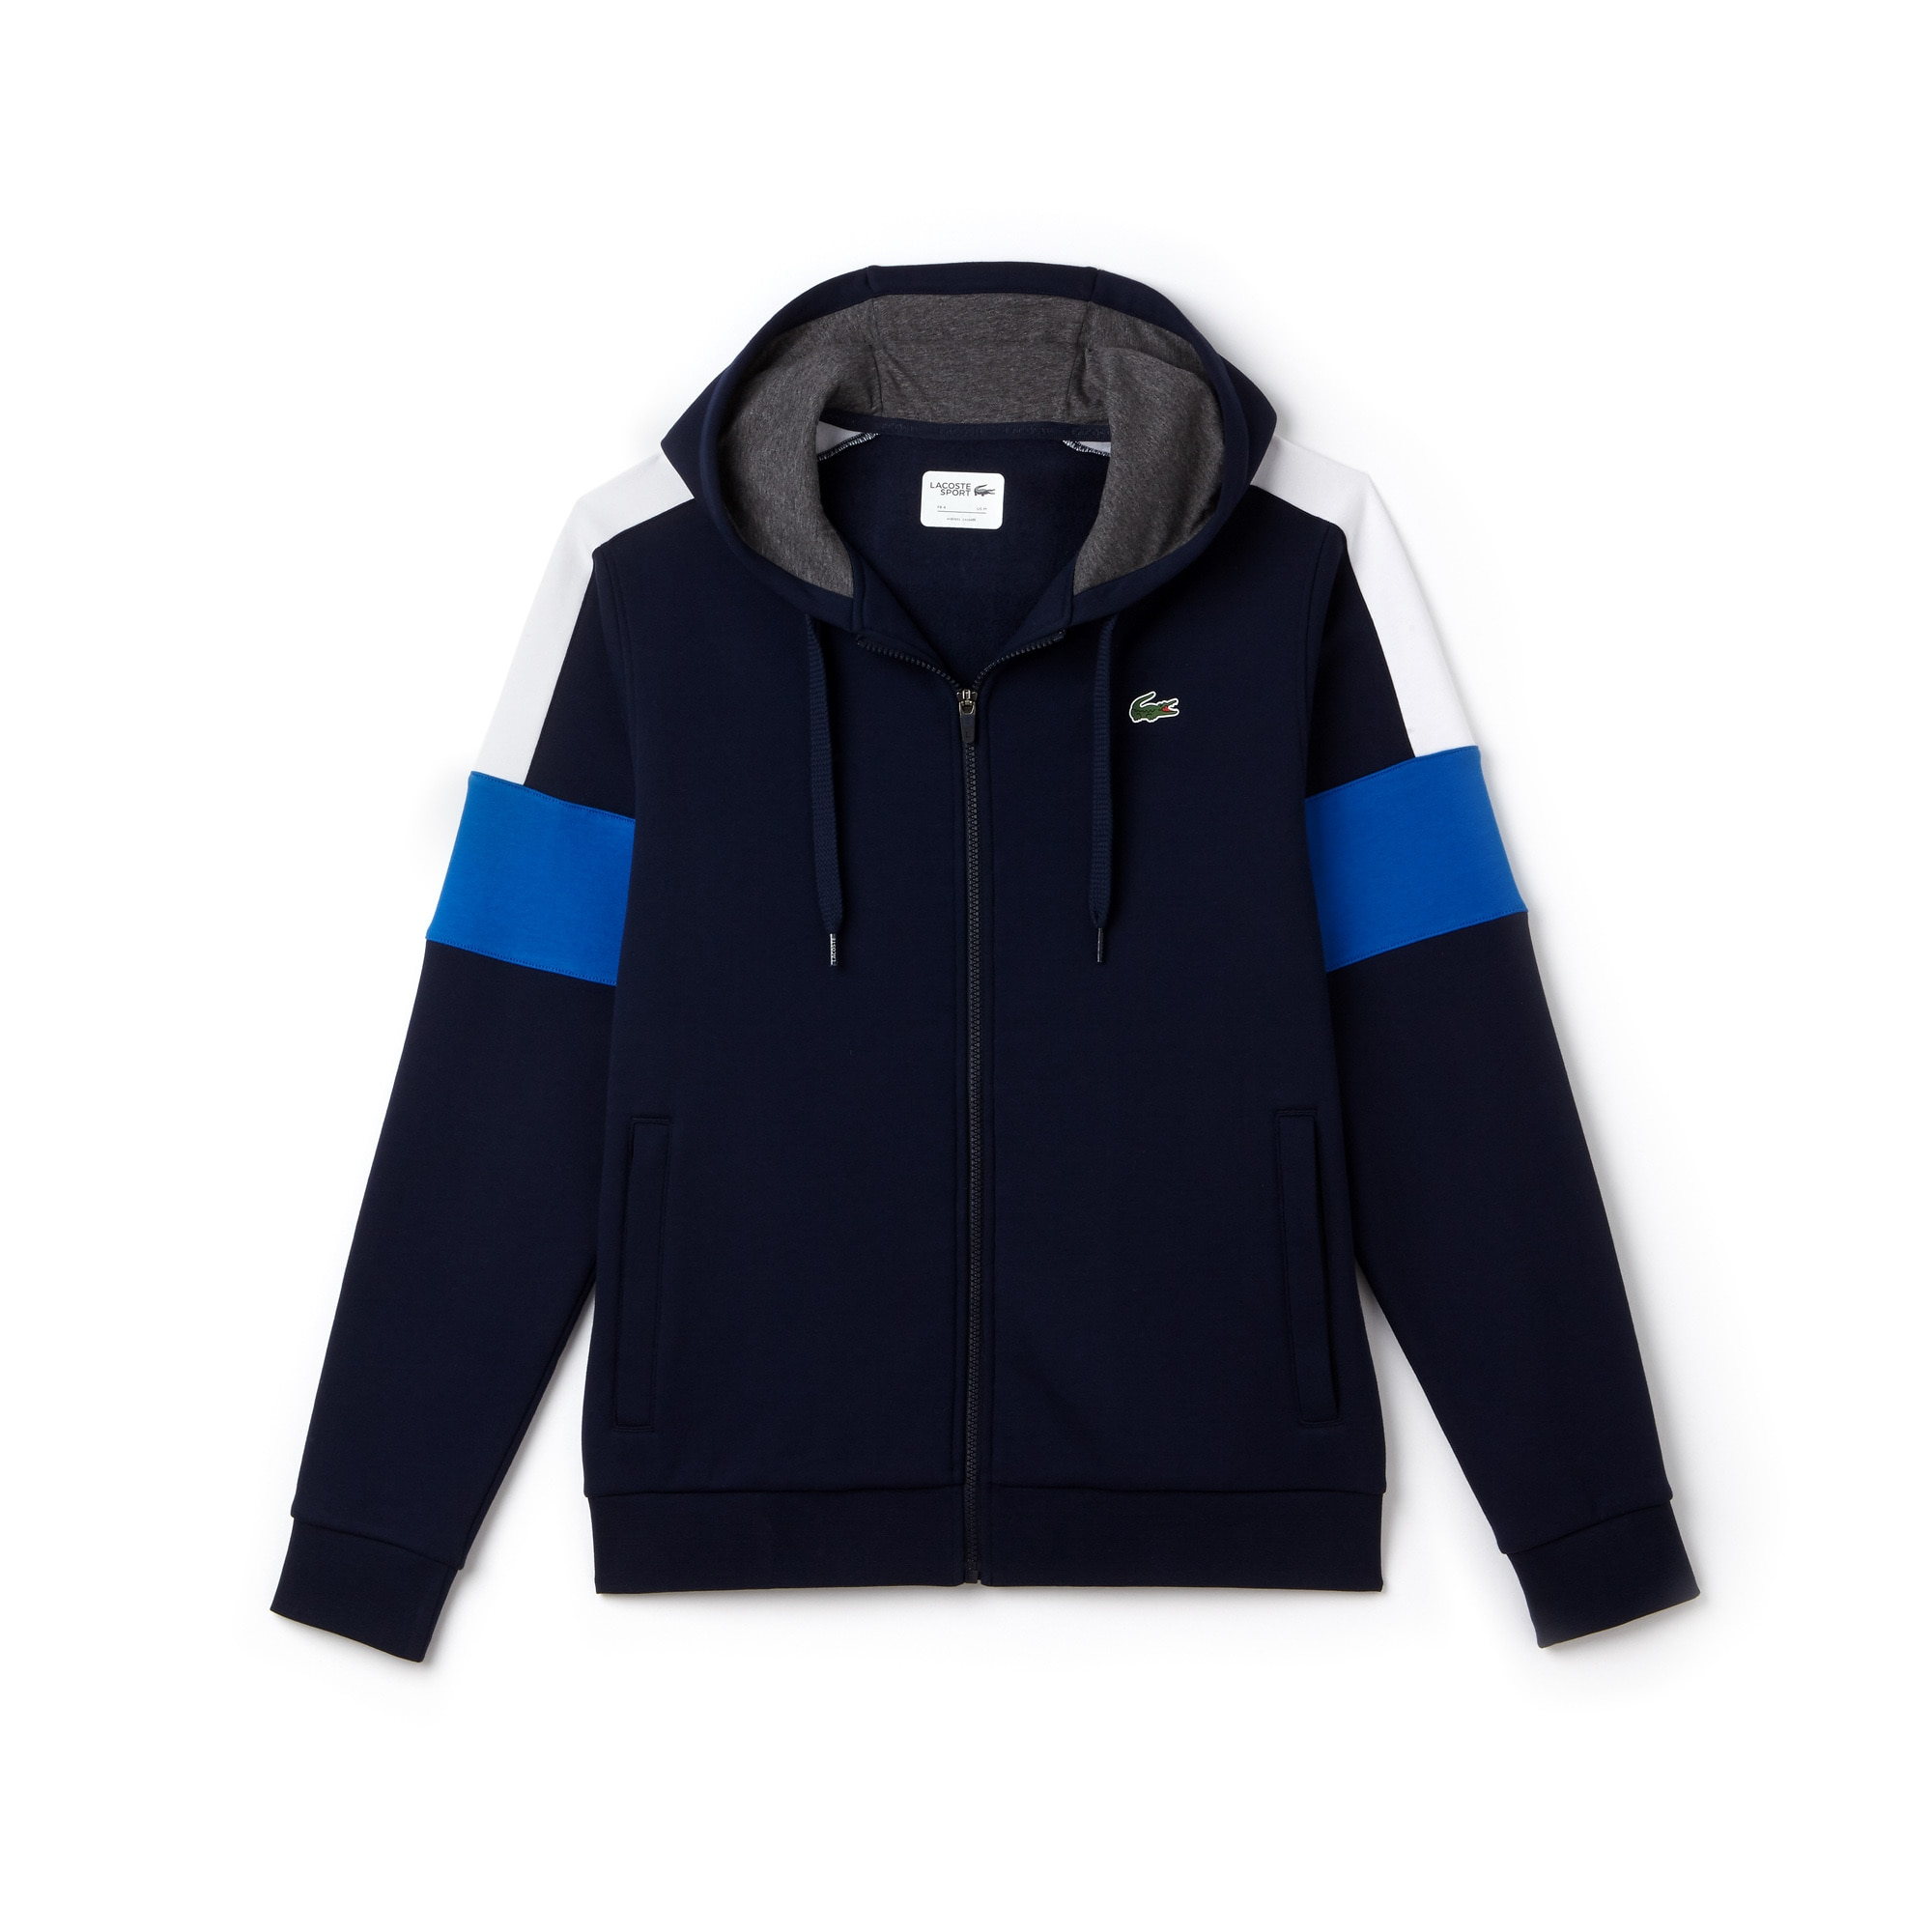 Men's SPORT Colorblock Fleece Zippered Tennis Sweatshirt